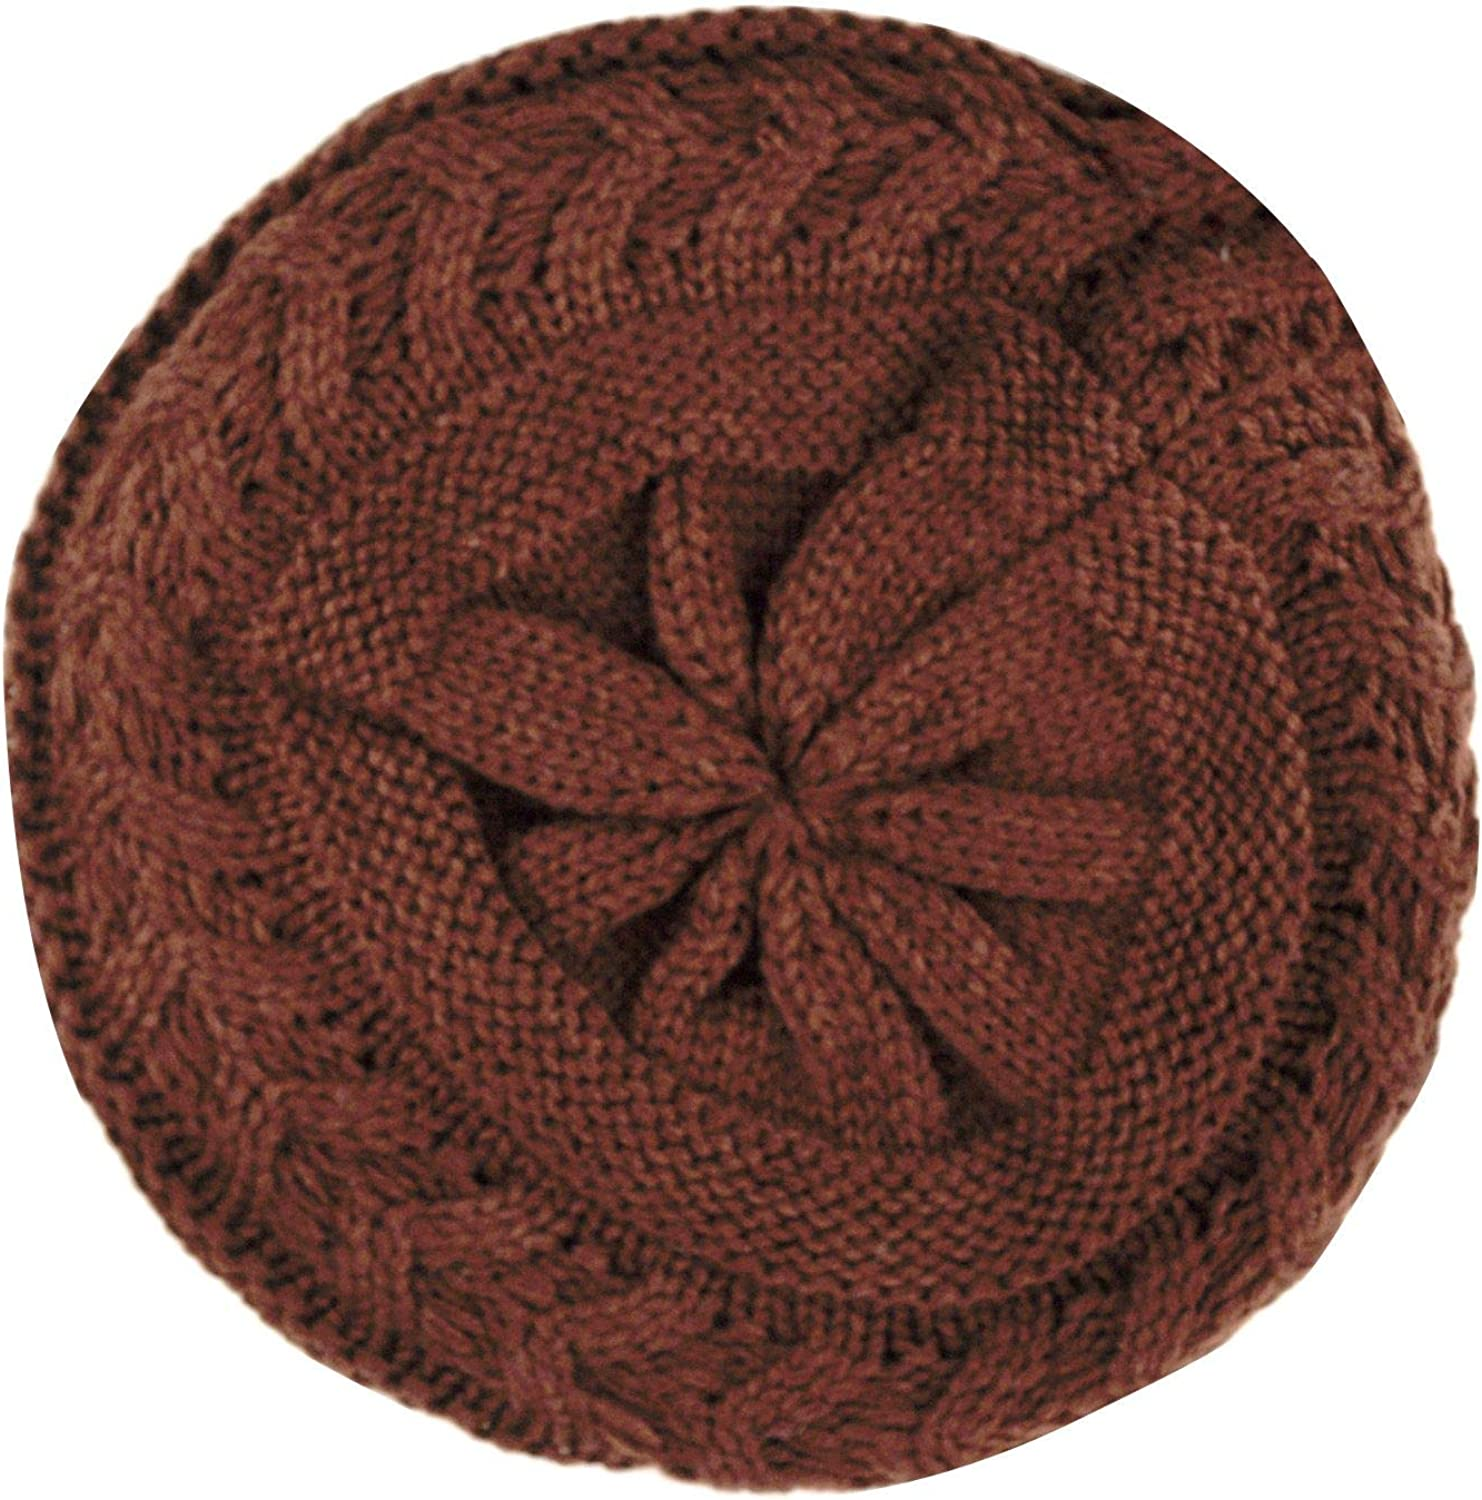 D/&Y Womens Solid Color Double Layer Knit Beanie Beret Hat